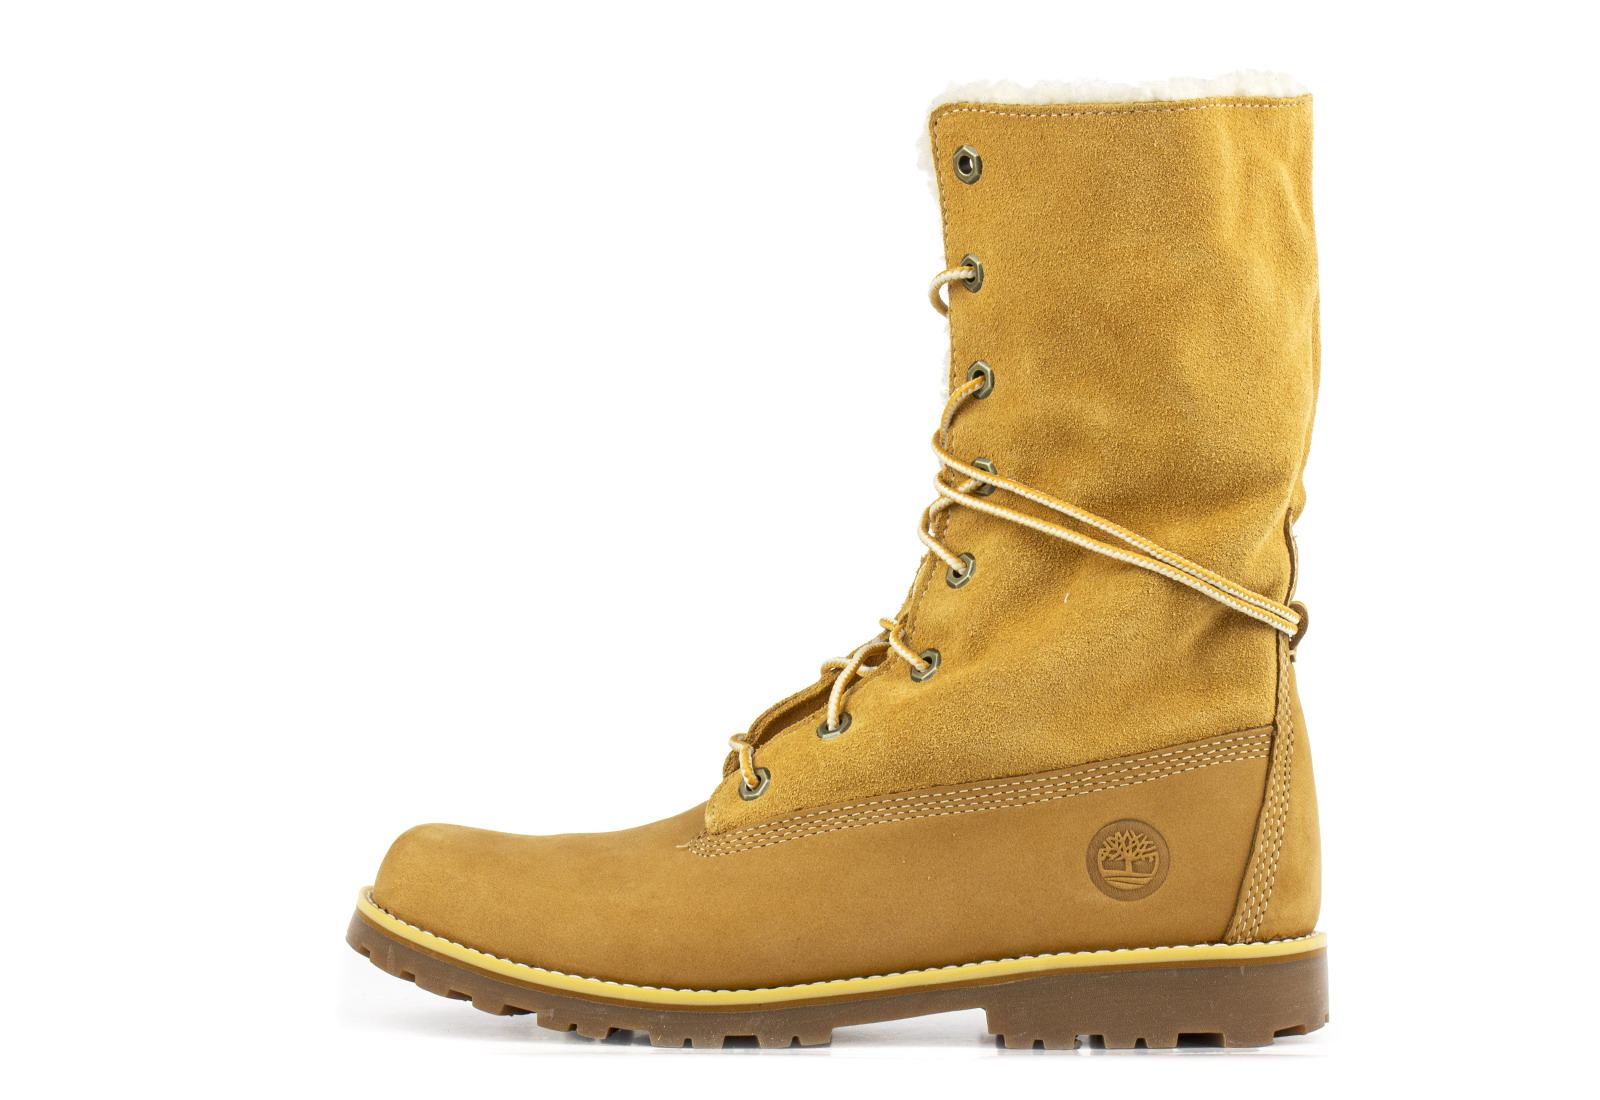 Timberland Topánky - 6 Inch Shrl Boot - a156n-whe - Tenisky f84ae126c41